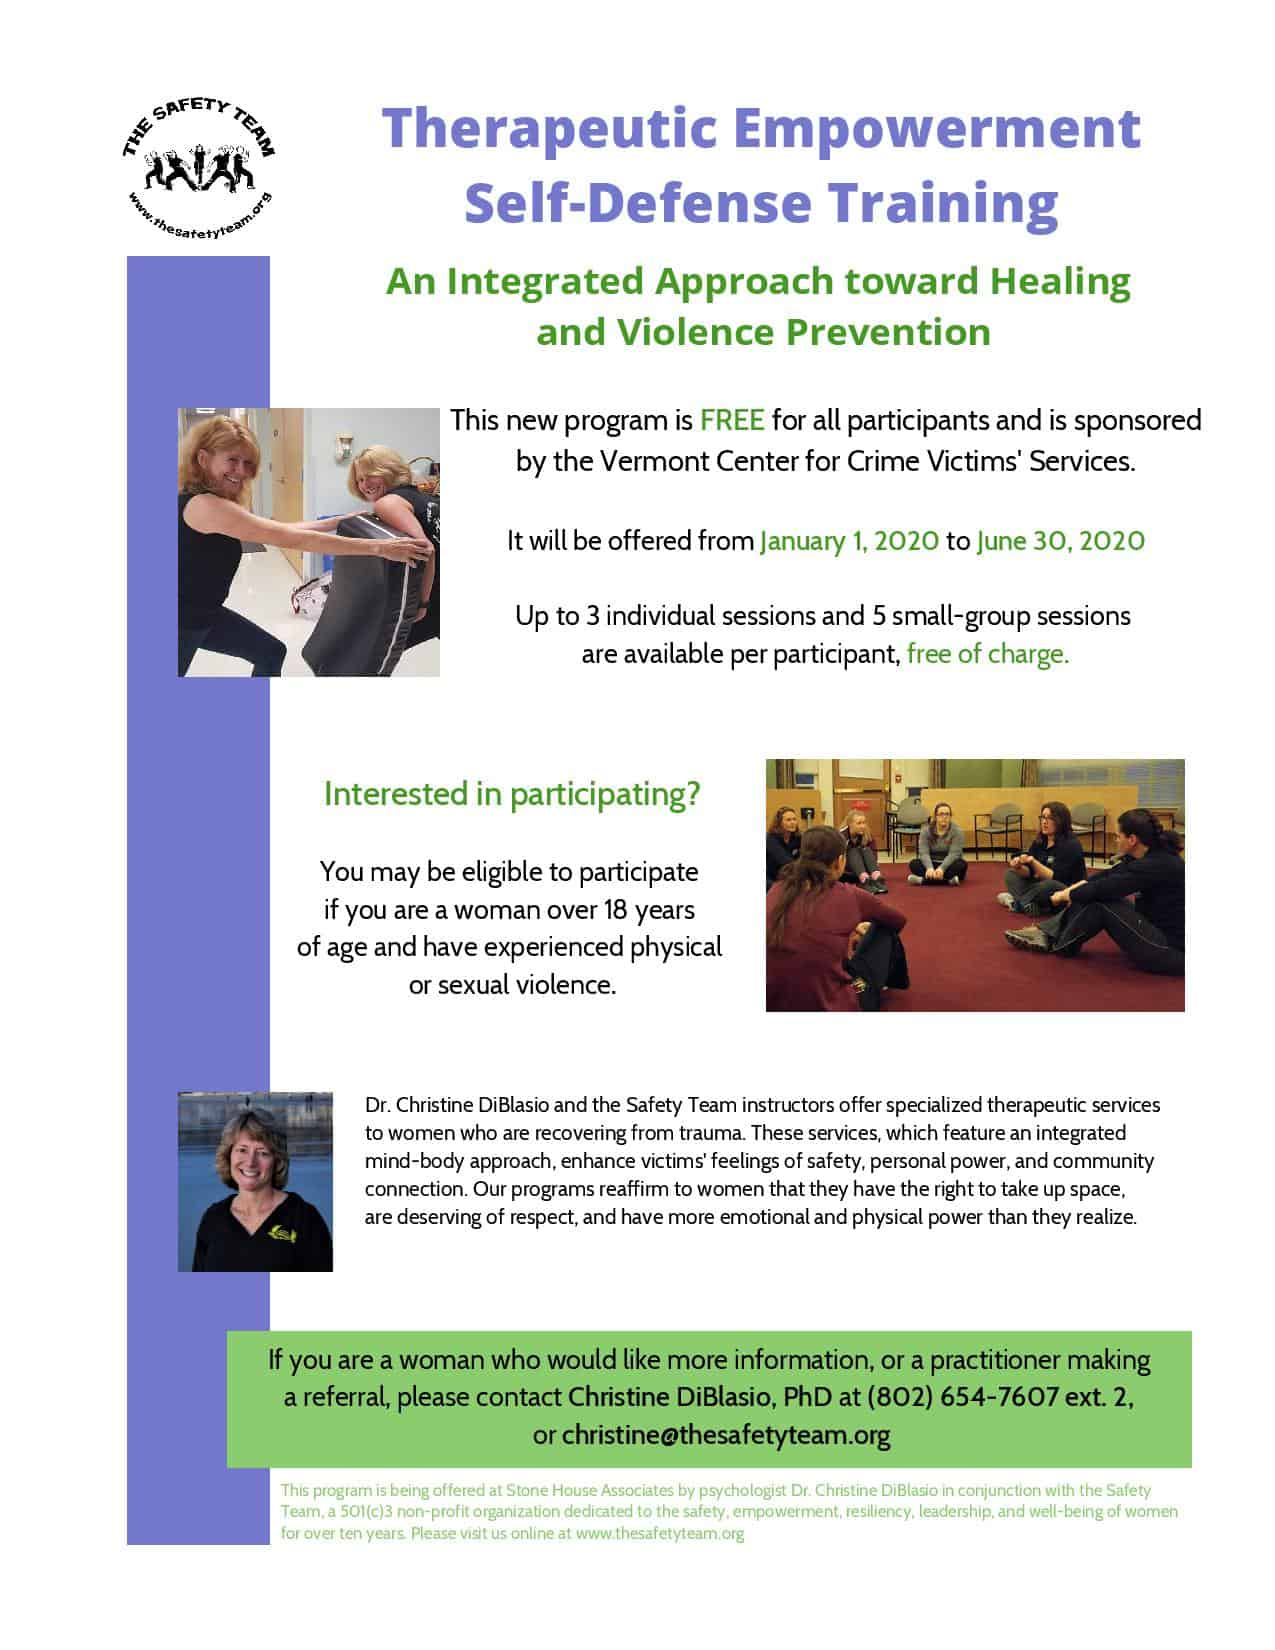 Therapeutic Empowerment Self-Defense Training: An Integrated Approach towards Trauma Recovery and Violence Prevention  Program Objectives and Key Components Psychoeducation about Trauma oGrounding and Stabilization Techniques oInformation on: §Neurobiological/Adrenaline Responses to Threat §Redirecting Blame toward Perpetrator §Somatic Reprocessing Therapeutic Empowerment Self-Defense Training                (see attached Logic Model) oSexual Assault Information oAffirmative Consent oESD Mindset oVerbal/Physical Boundary Setting oEmpowerment Self-Defense Techniques oRisk Reduction Strategies